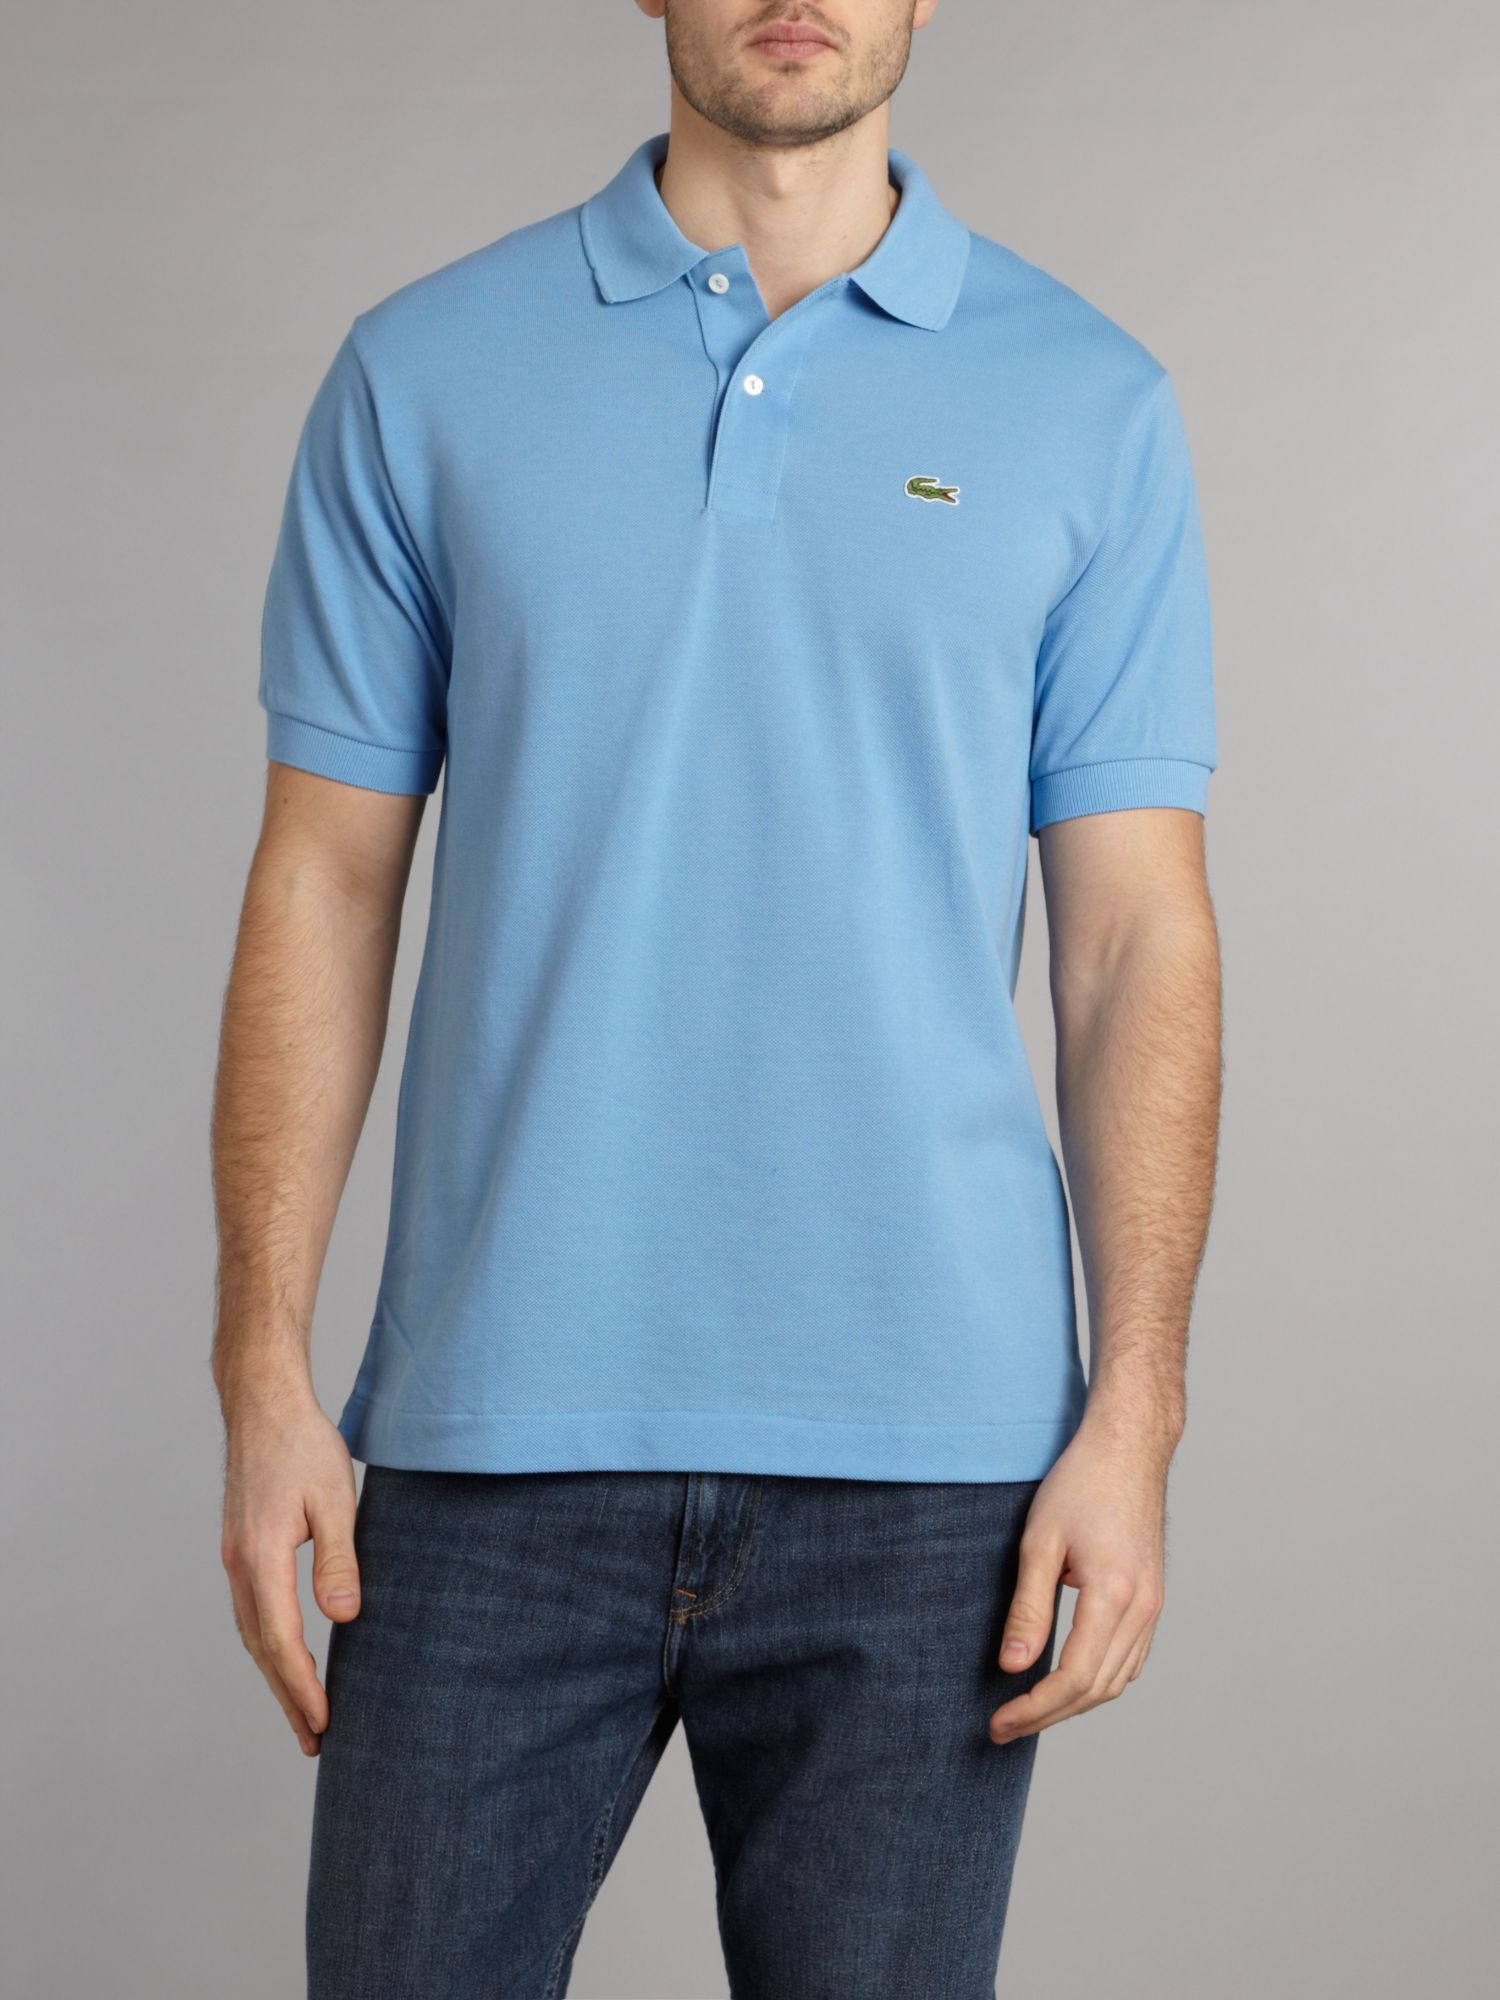 Classic fitted polo shirt